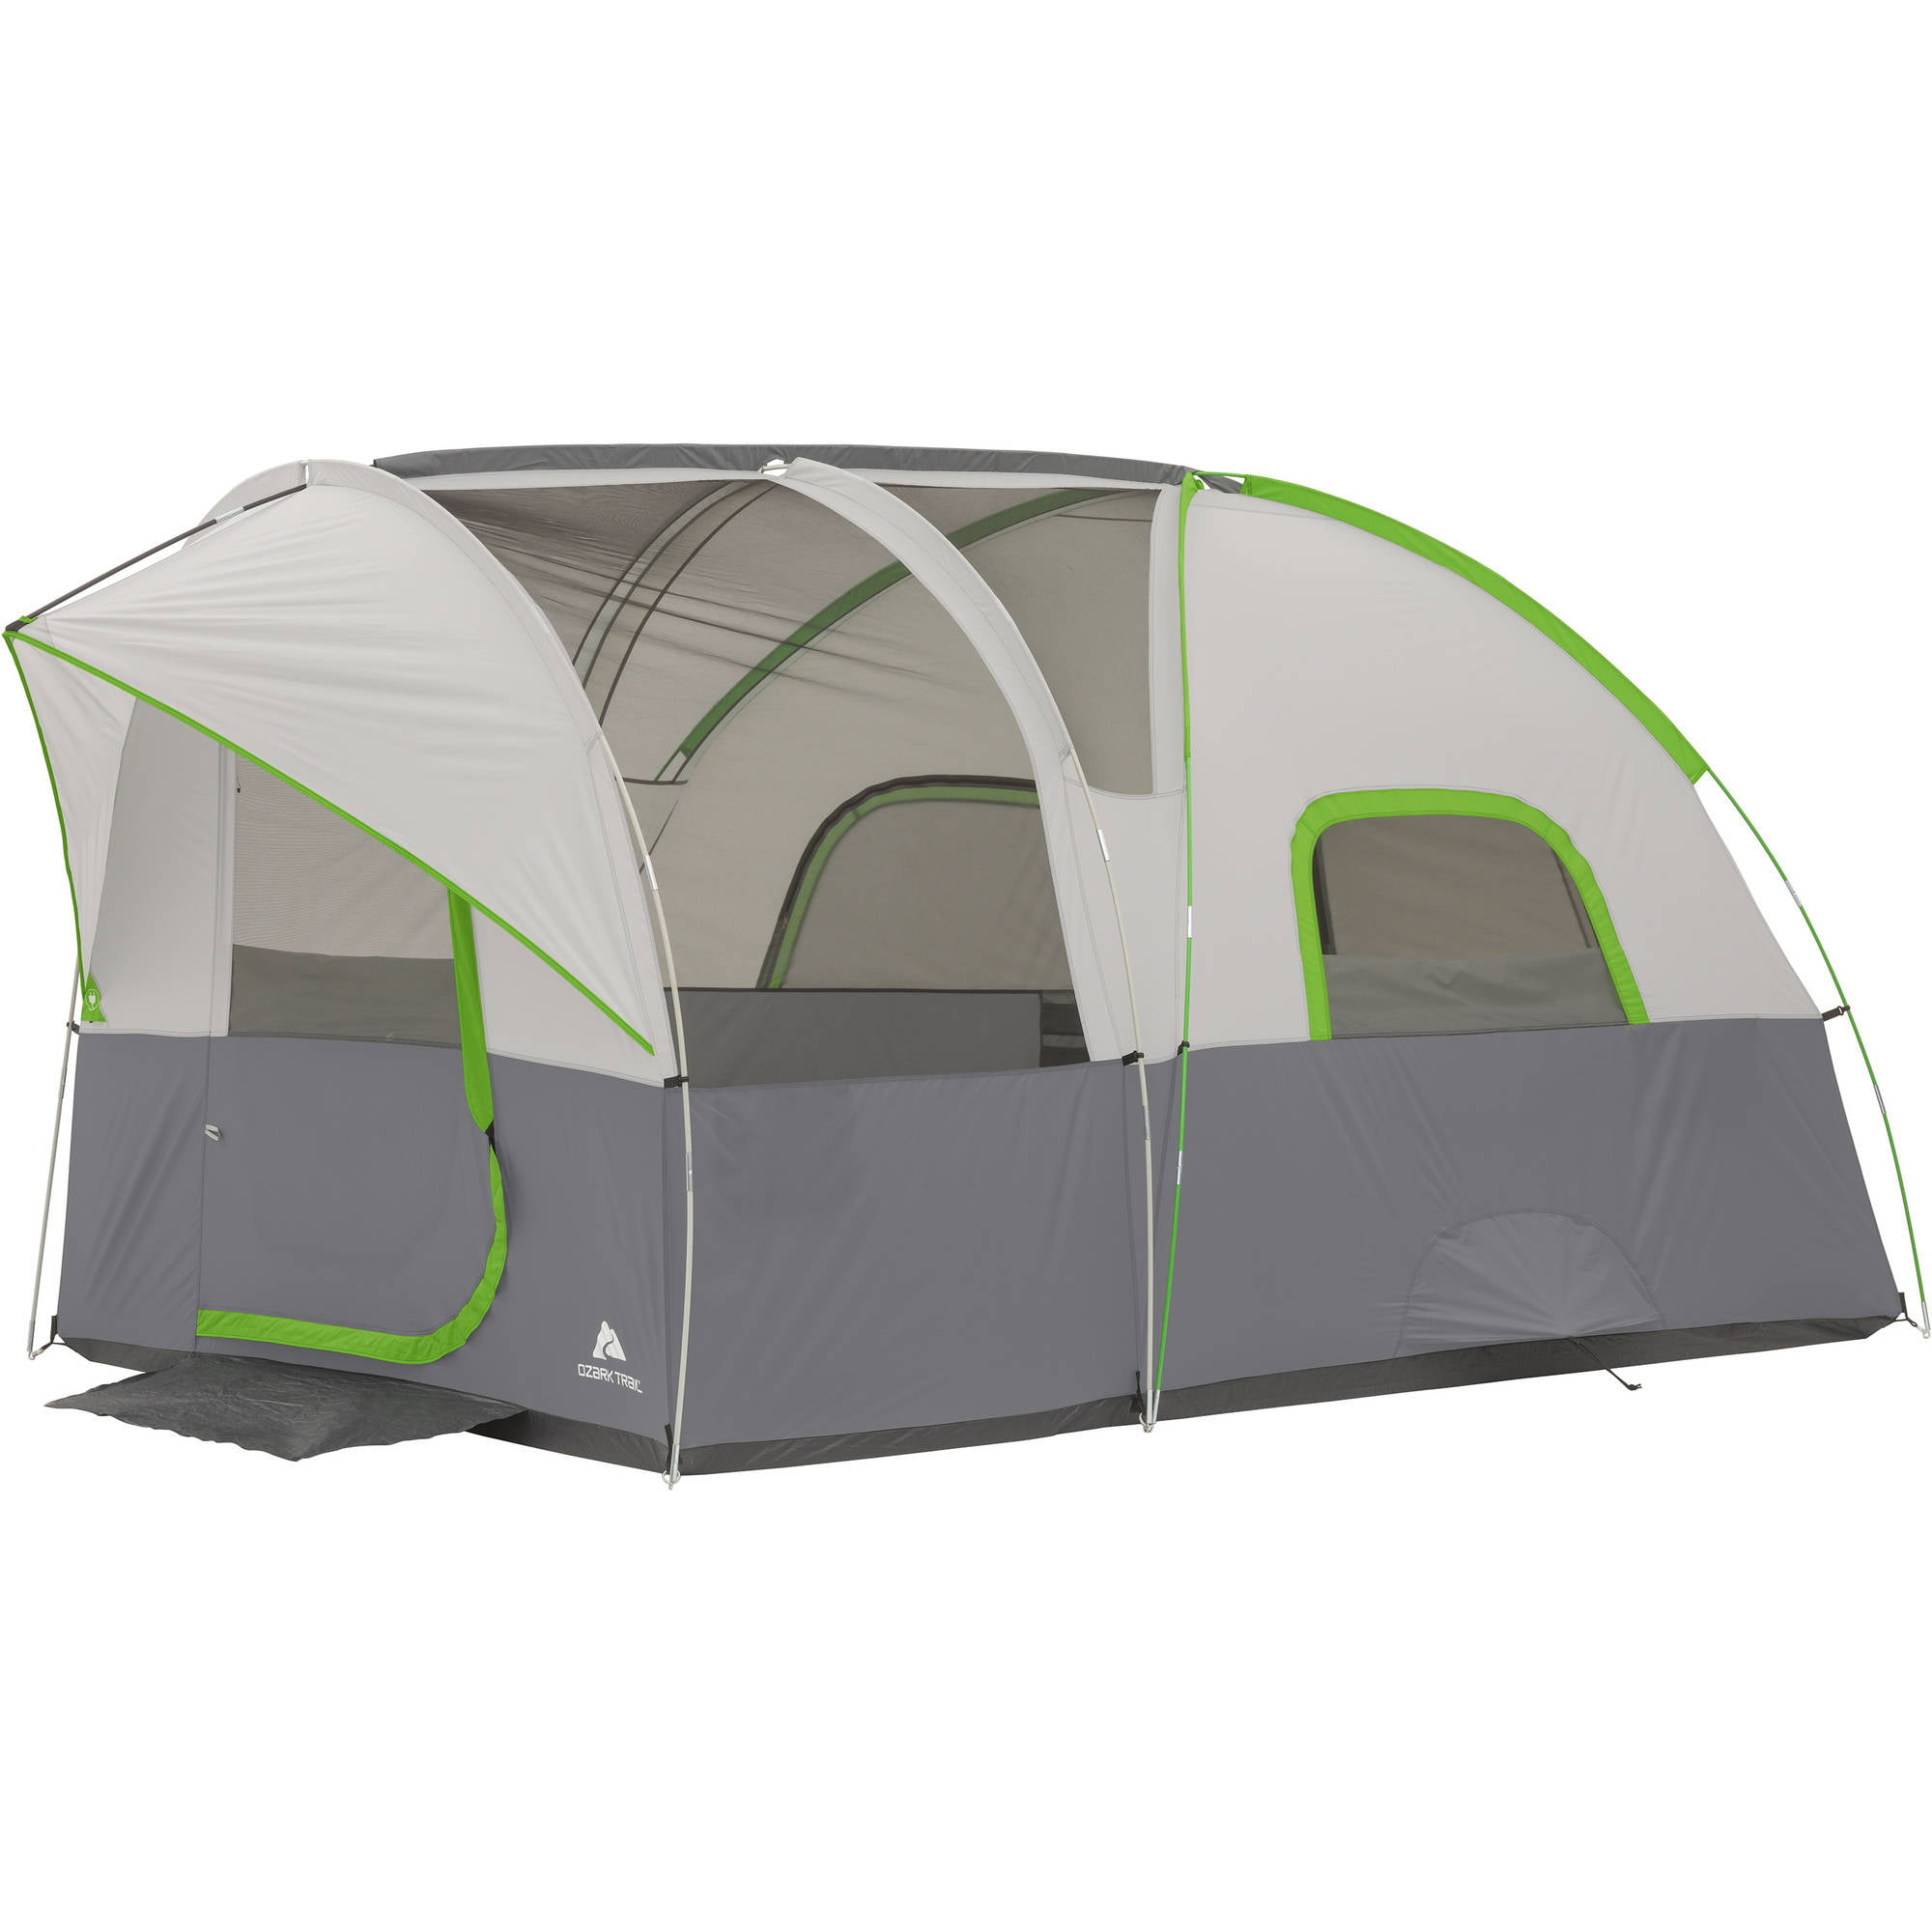 Ozark Trail 12' x 8' Modified Dome Tunnel Tent, Sleeps 6 by Bohemian Travel Gear Limited